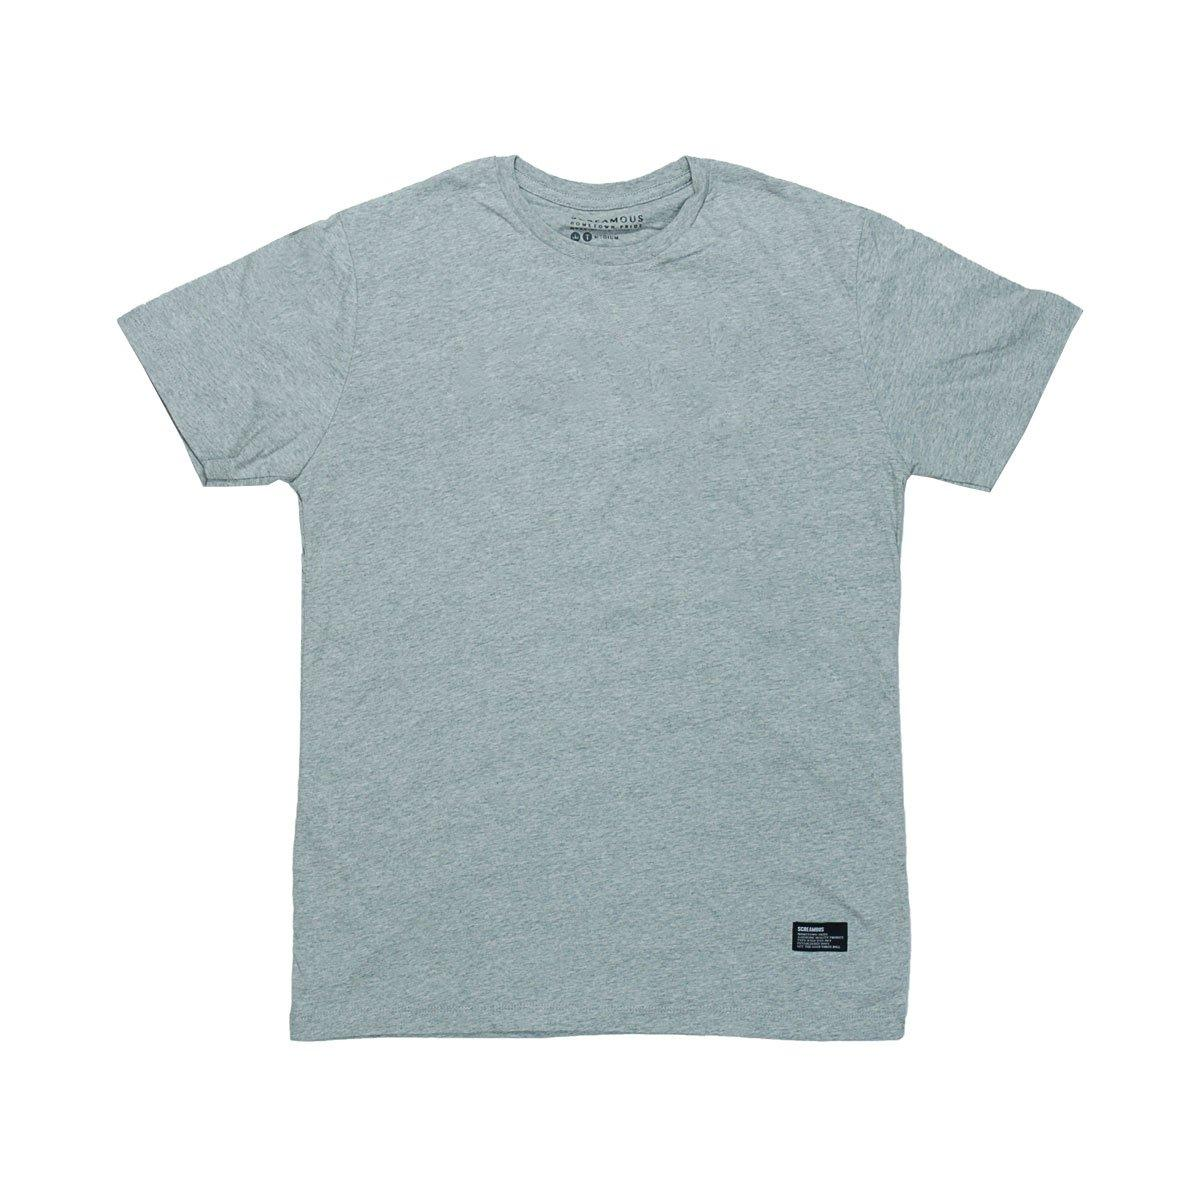 T Shirt Screamous Unique Line#1 Misty